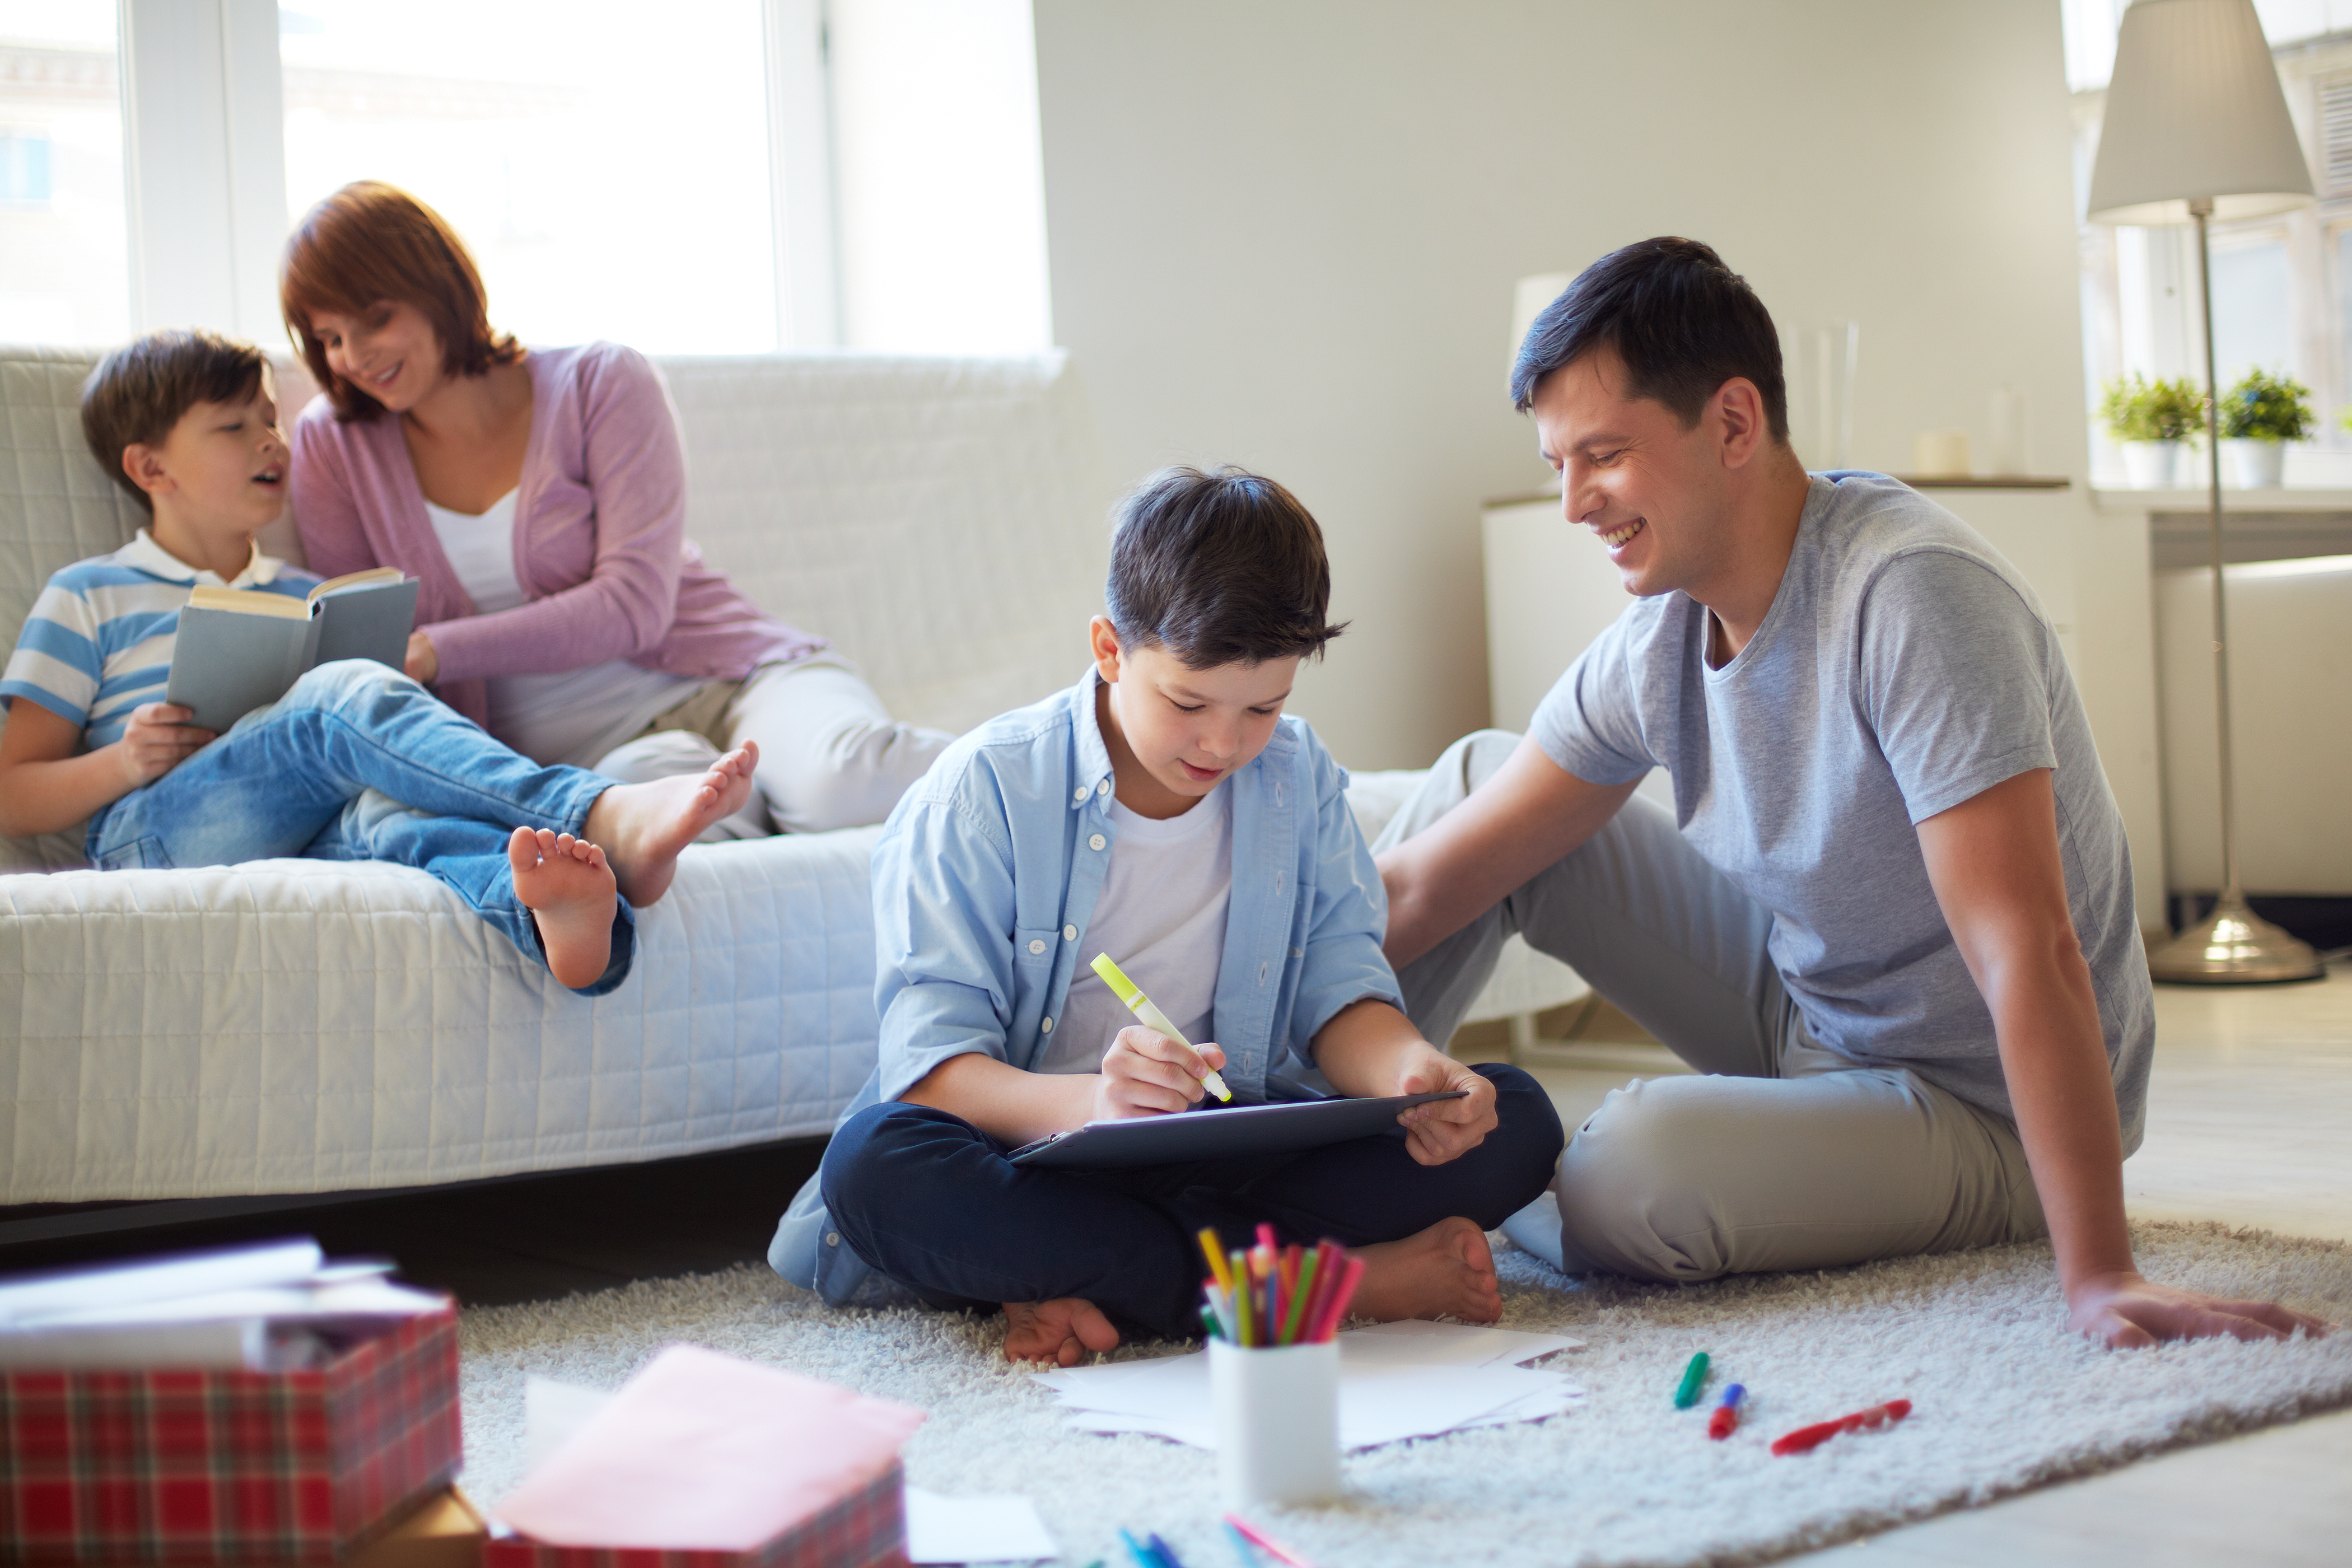 Family enjoying time together in living room